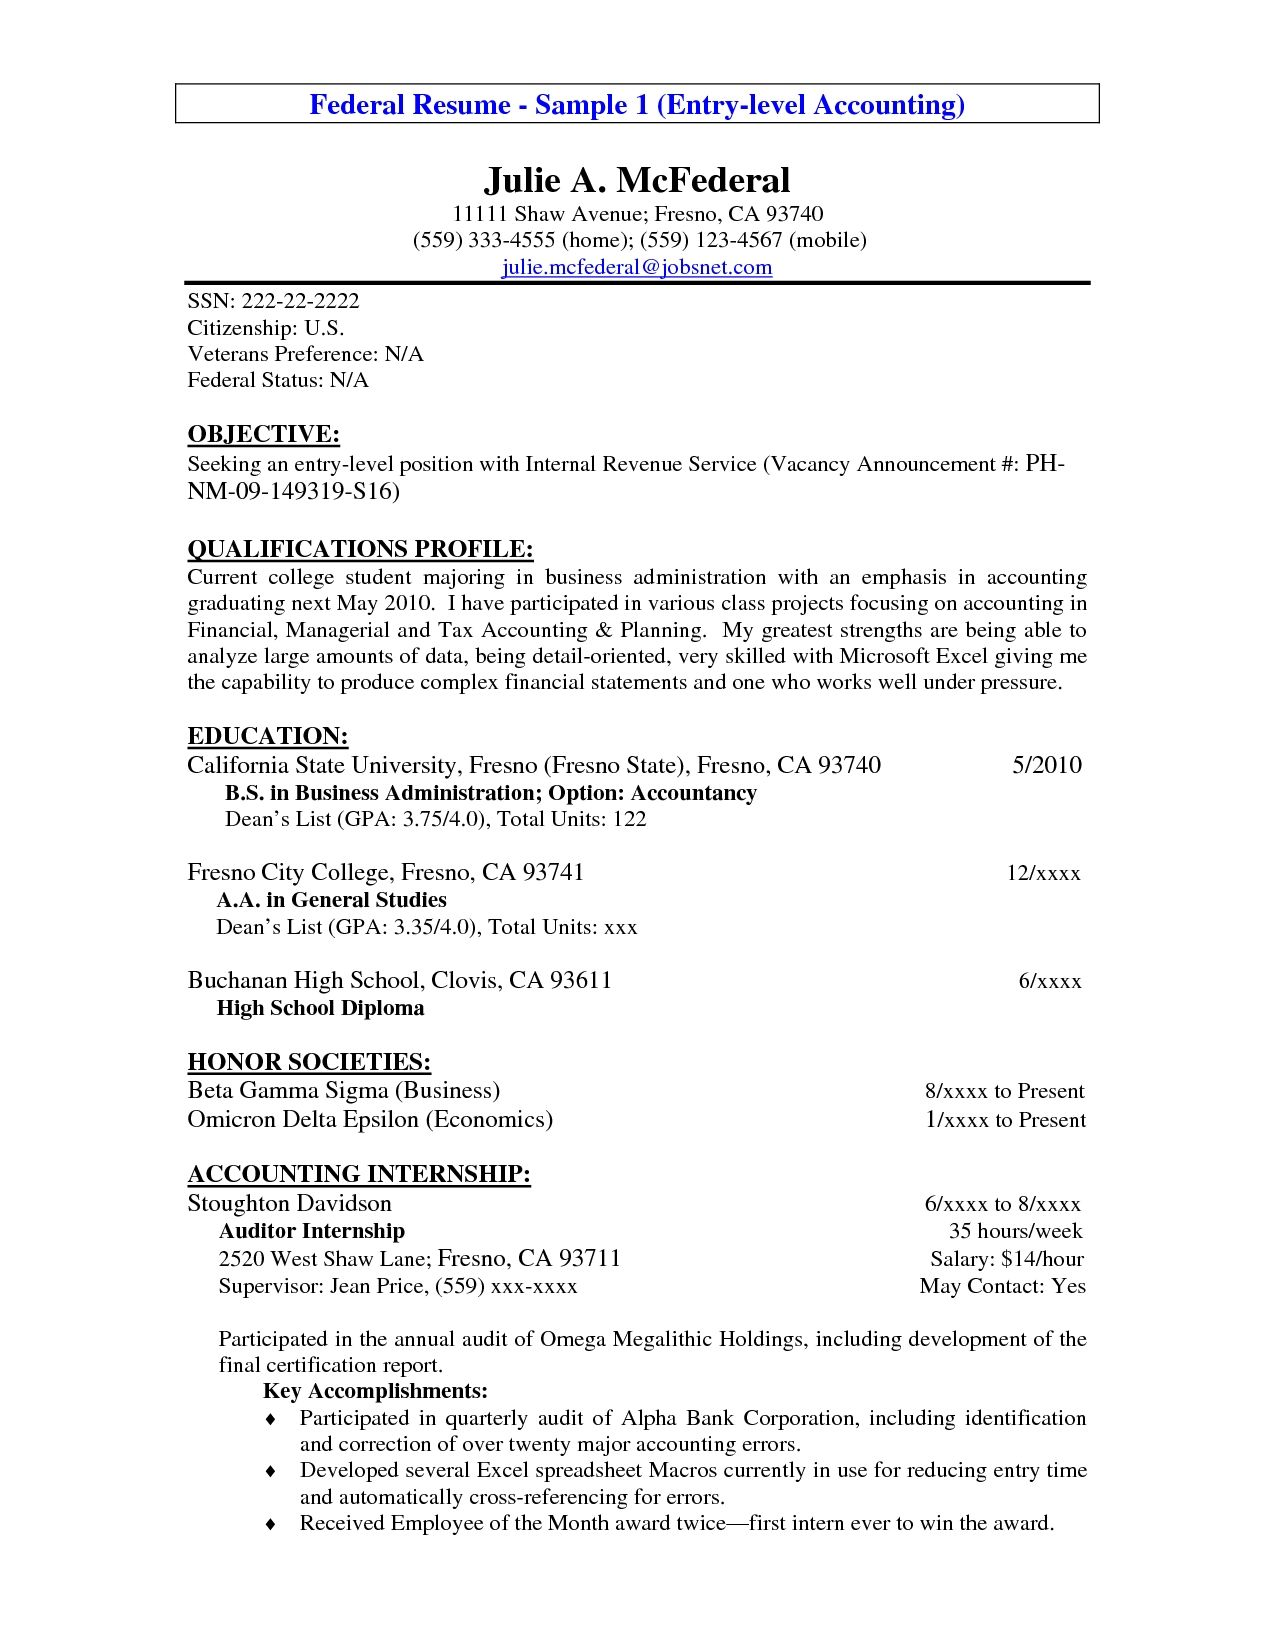 entry level resume example entry level accounting resume sample 4b6c55396be0e1e55c4519cb8c5ab94c 557531628853970129